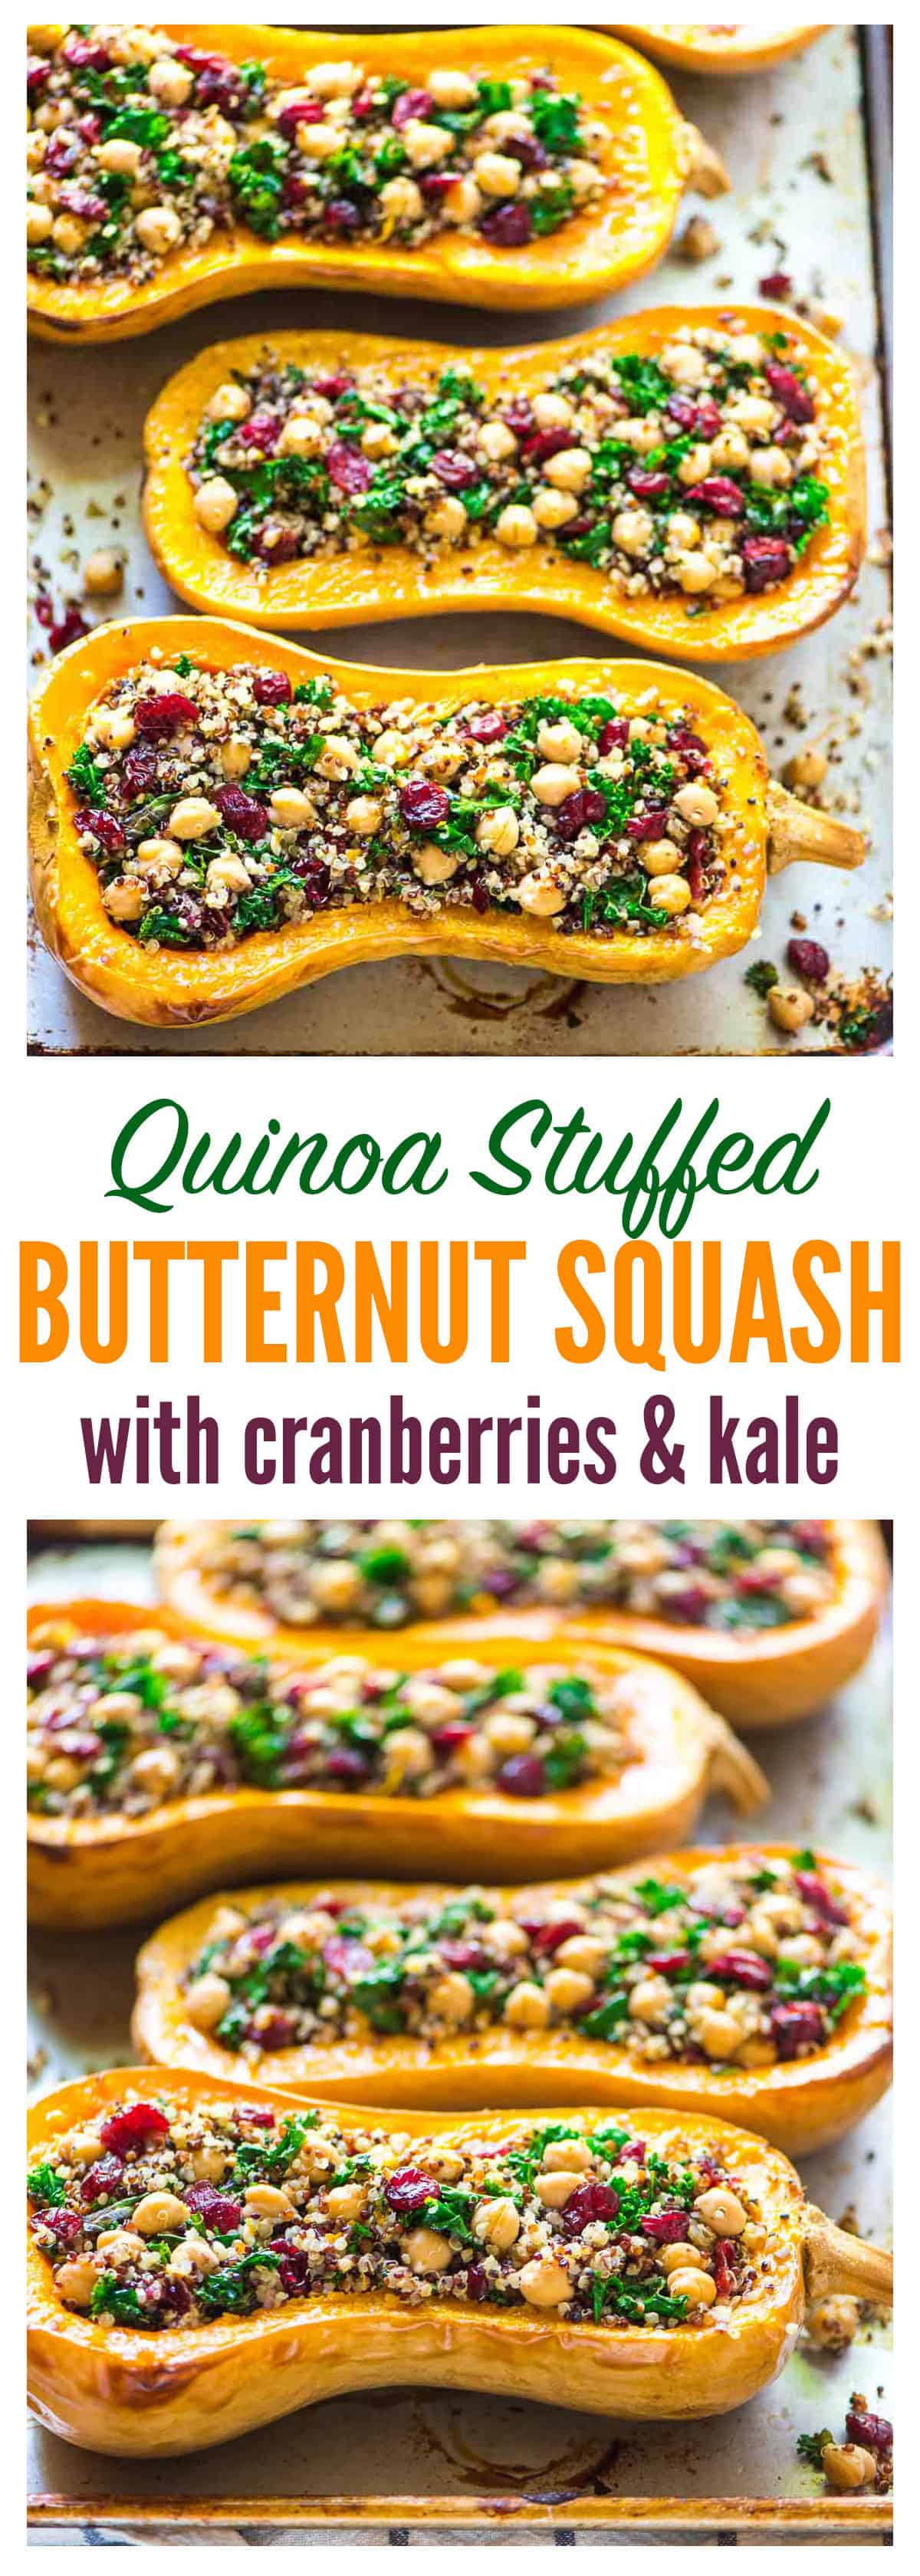 Quinoa Stuffed Butternut Squash with Cranberries and Kale   Well Plated